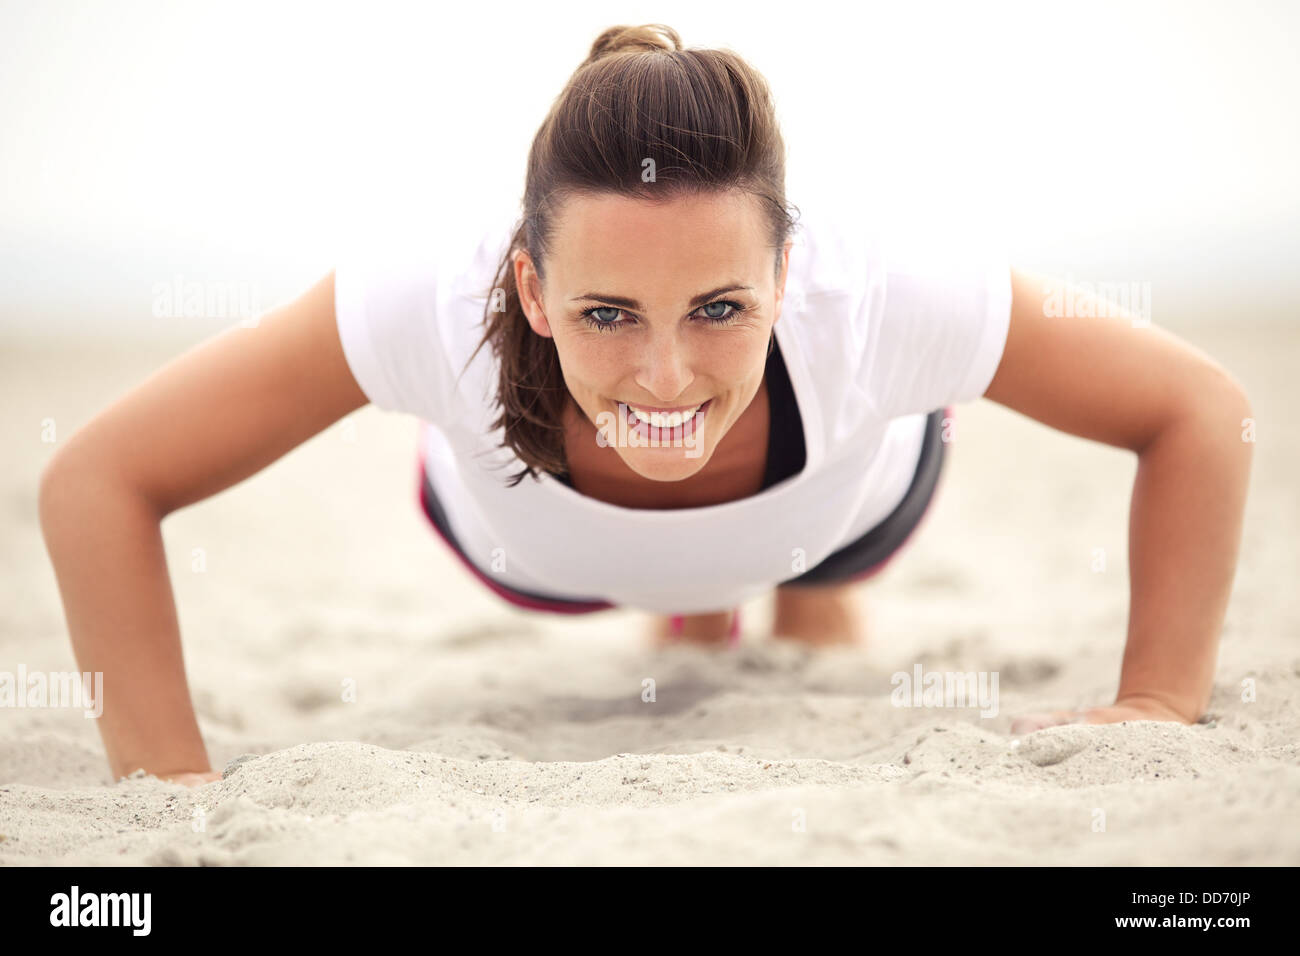 Happy fitness caucasian woman on the beach smiling while doing push up exercise. Active and healthy lifestyle. - Stock Image